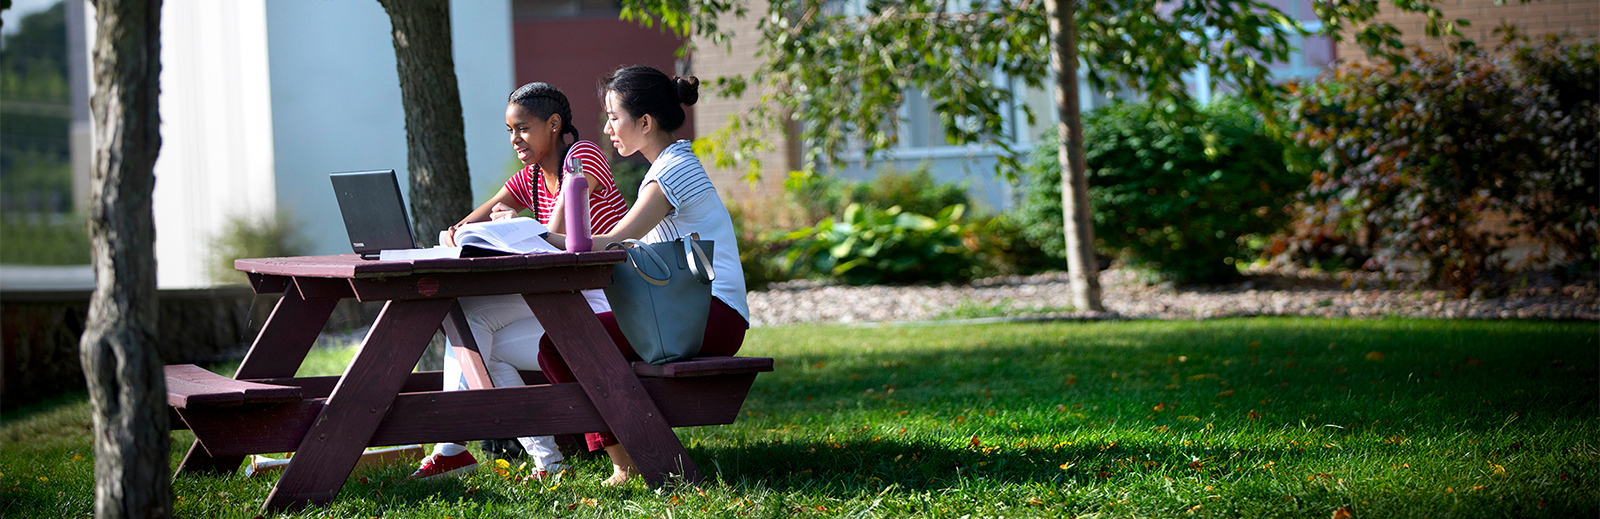 Students sitting at picnic table on campus.